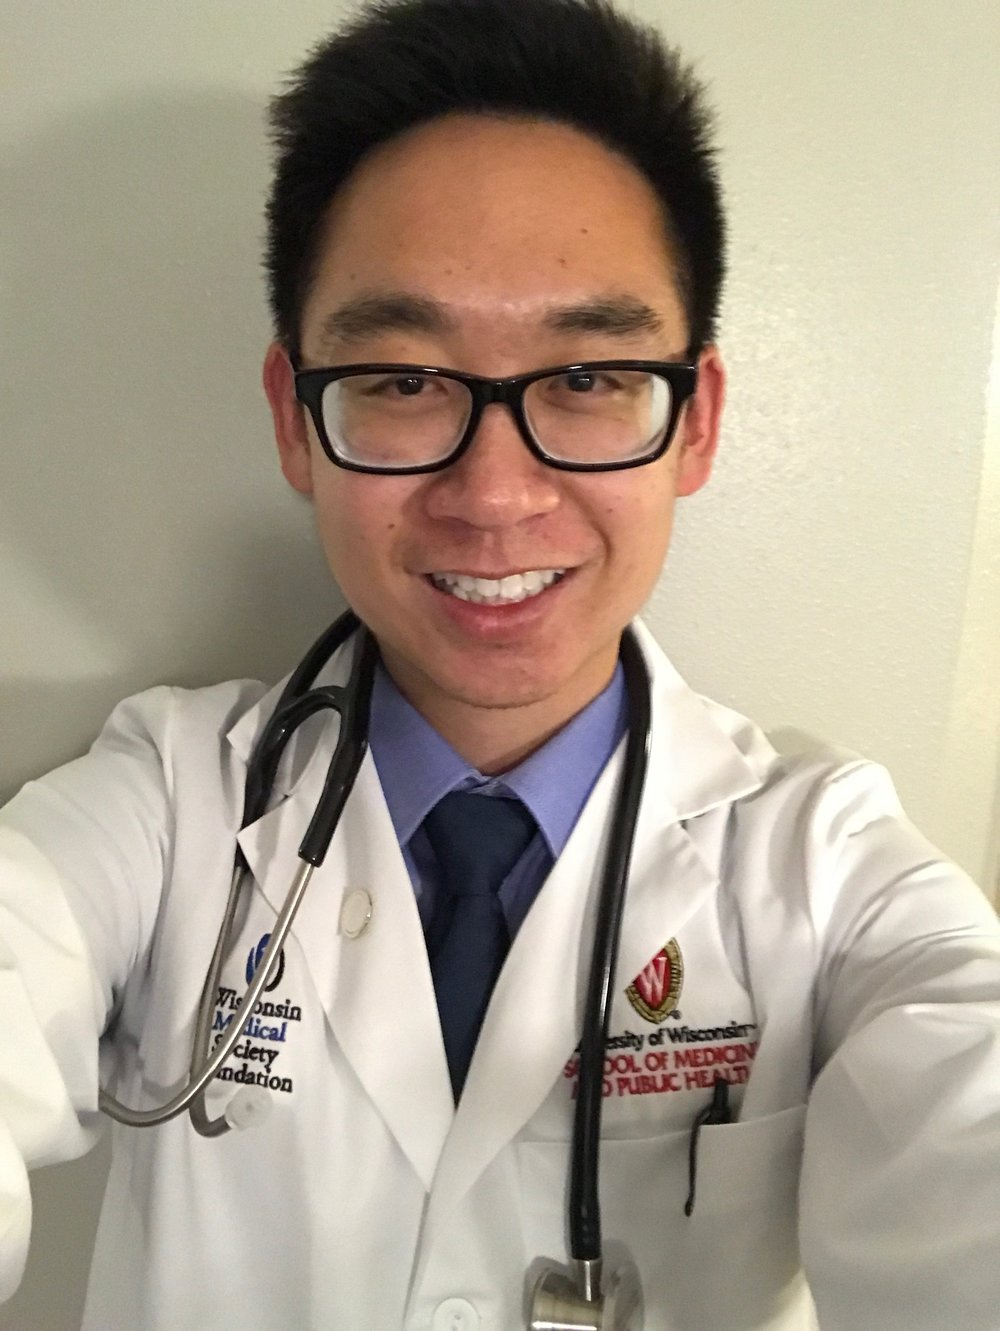 Truman Ngyuen - Year in medical school: second yearHometown: Garden Grove, CAHigh School: Rancho Alamitos High SchoolHCF role: Co-President